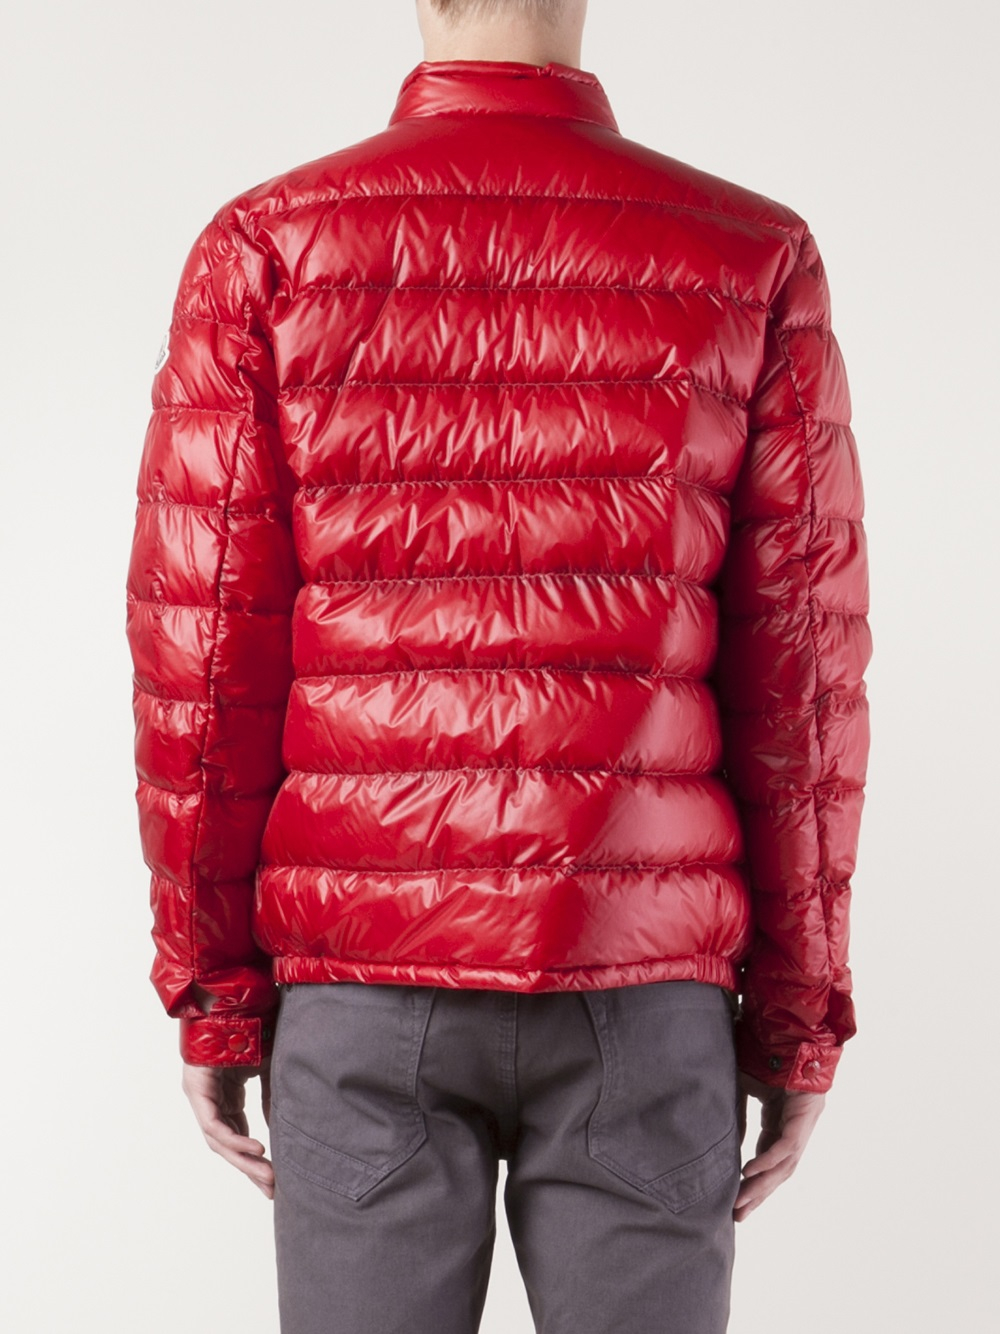 You searched for: red puffy coat! Etsy is the home to thousands of handmade, vintage, and one-of-a-kind products and gifts related to your search. No matter what you're looking for or where you are in the world, our global marketplace of sellers can help you find unique and affordable options. Let's get started!